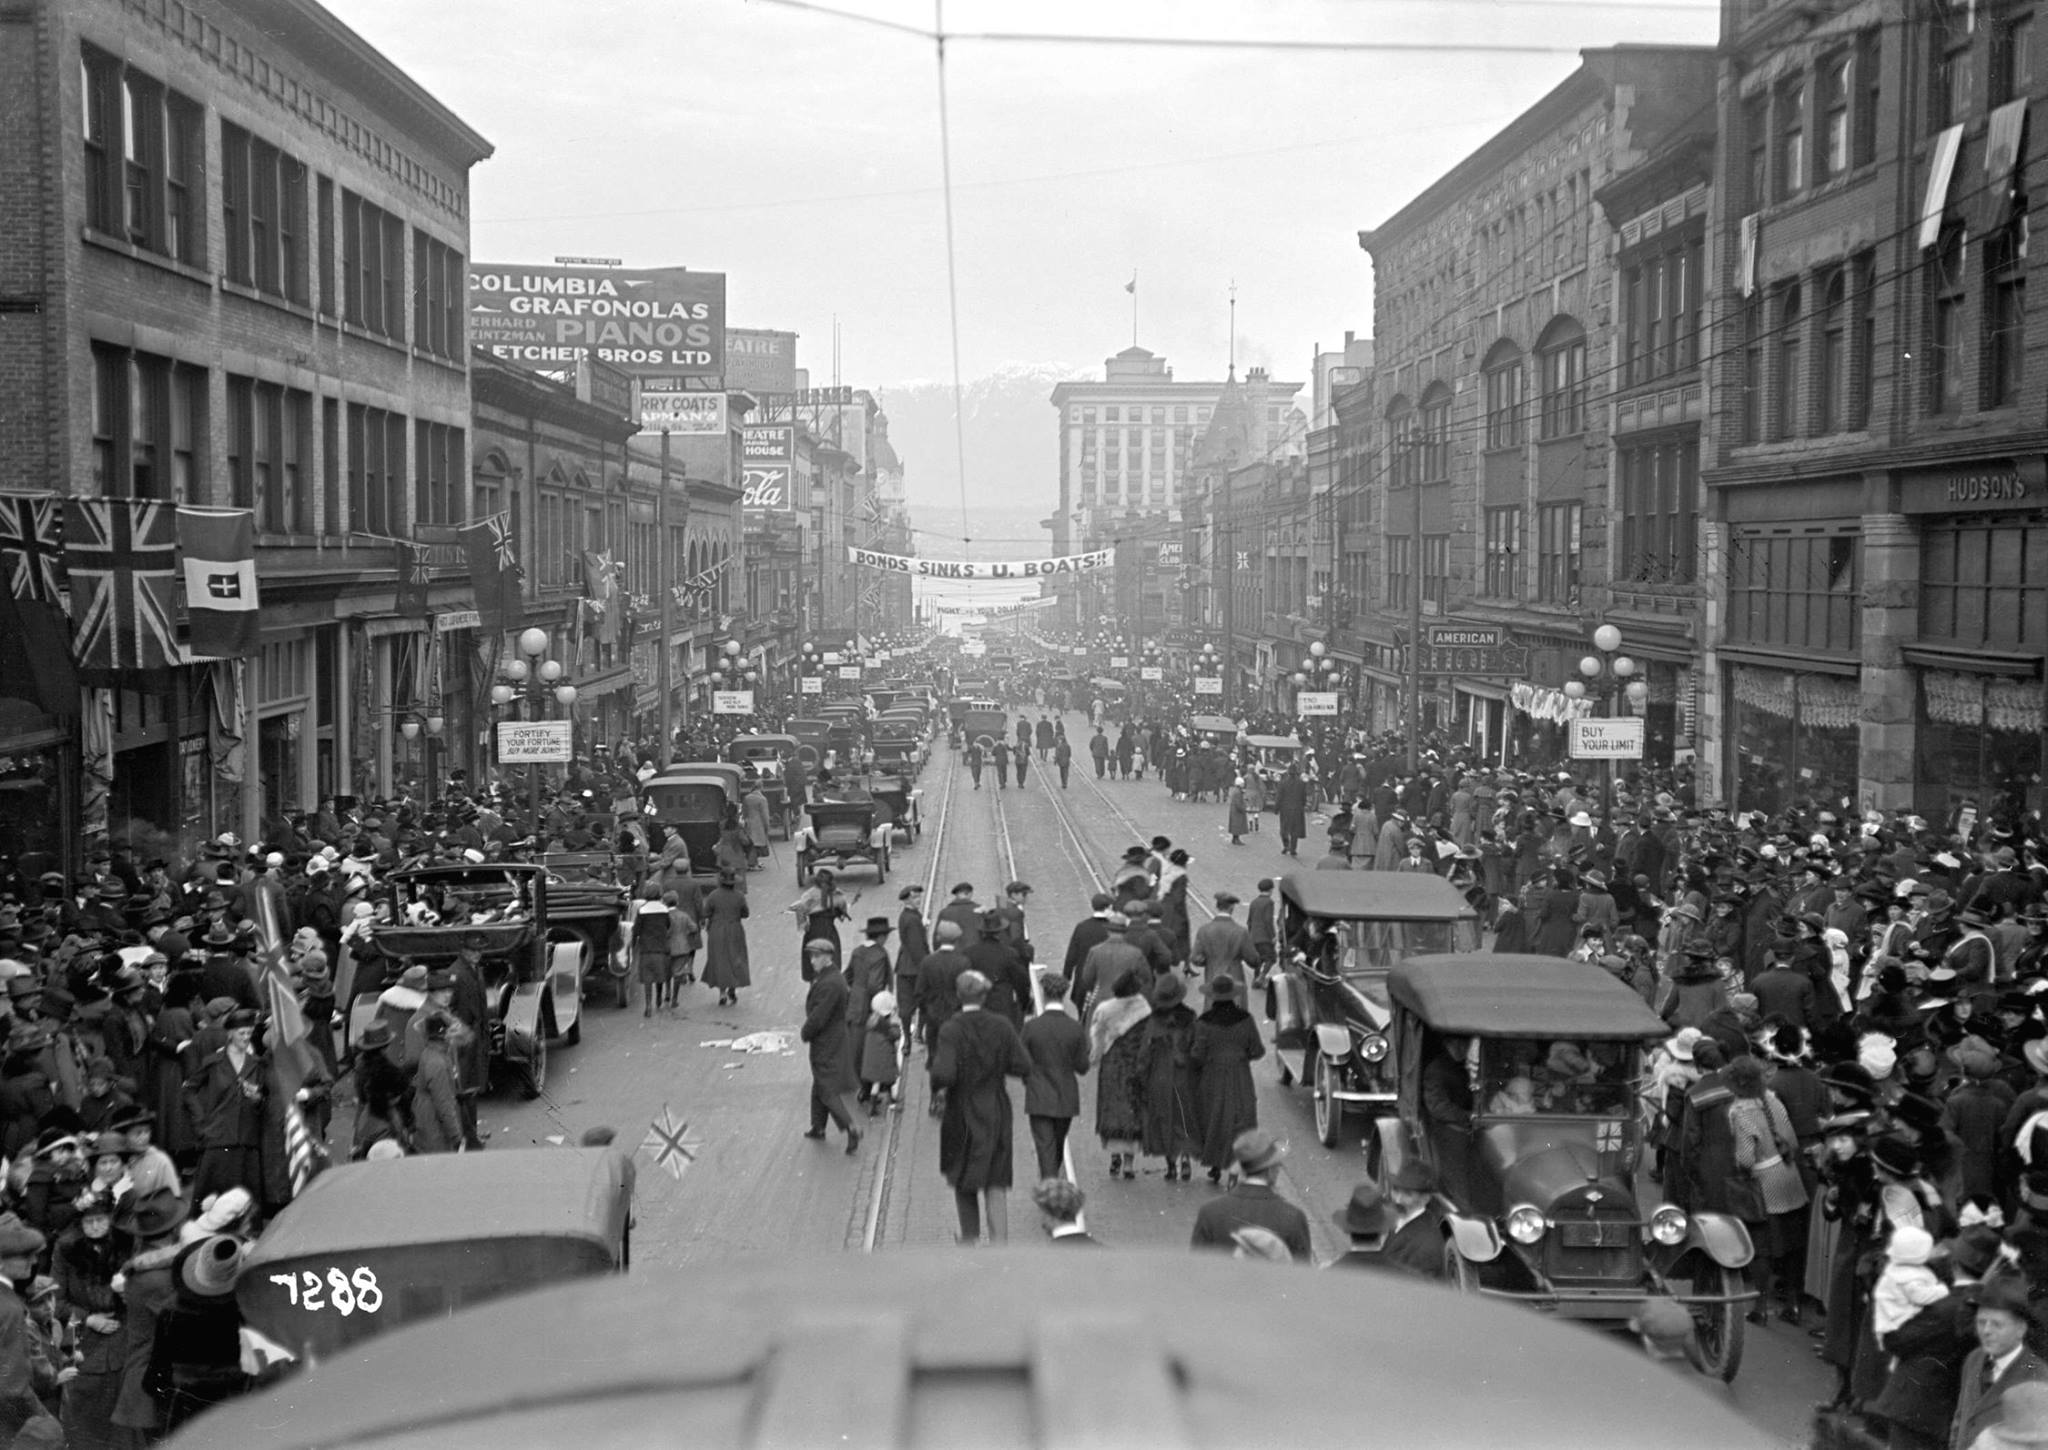 Image: Vancouver City Archives